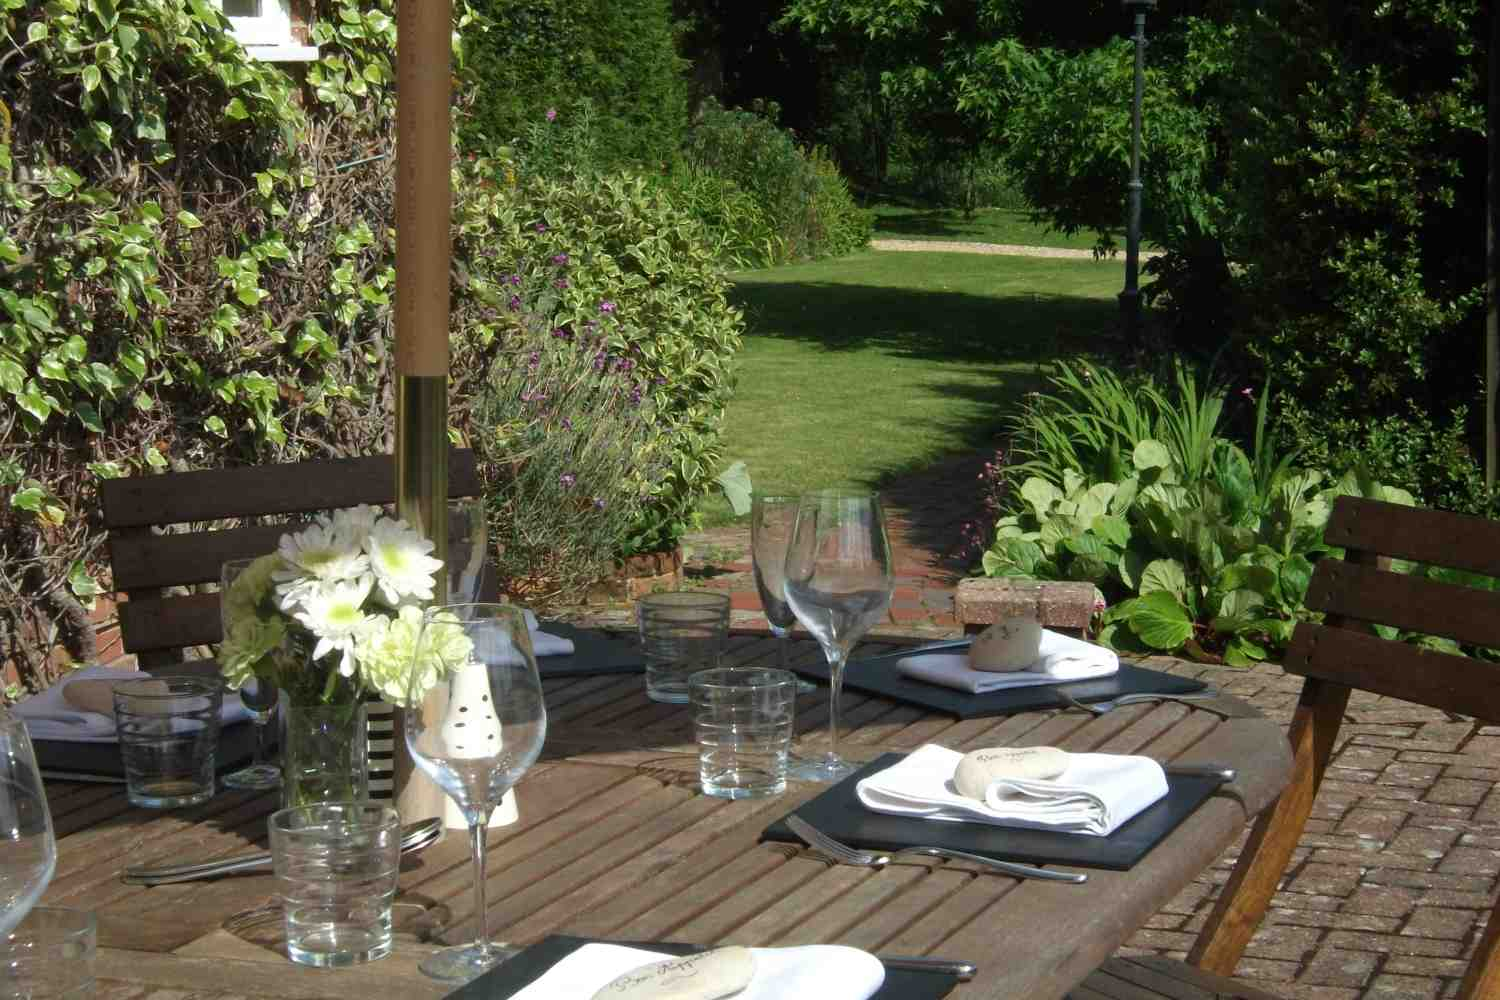 Table in grounds for alfresco dining